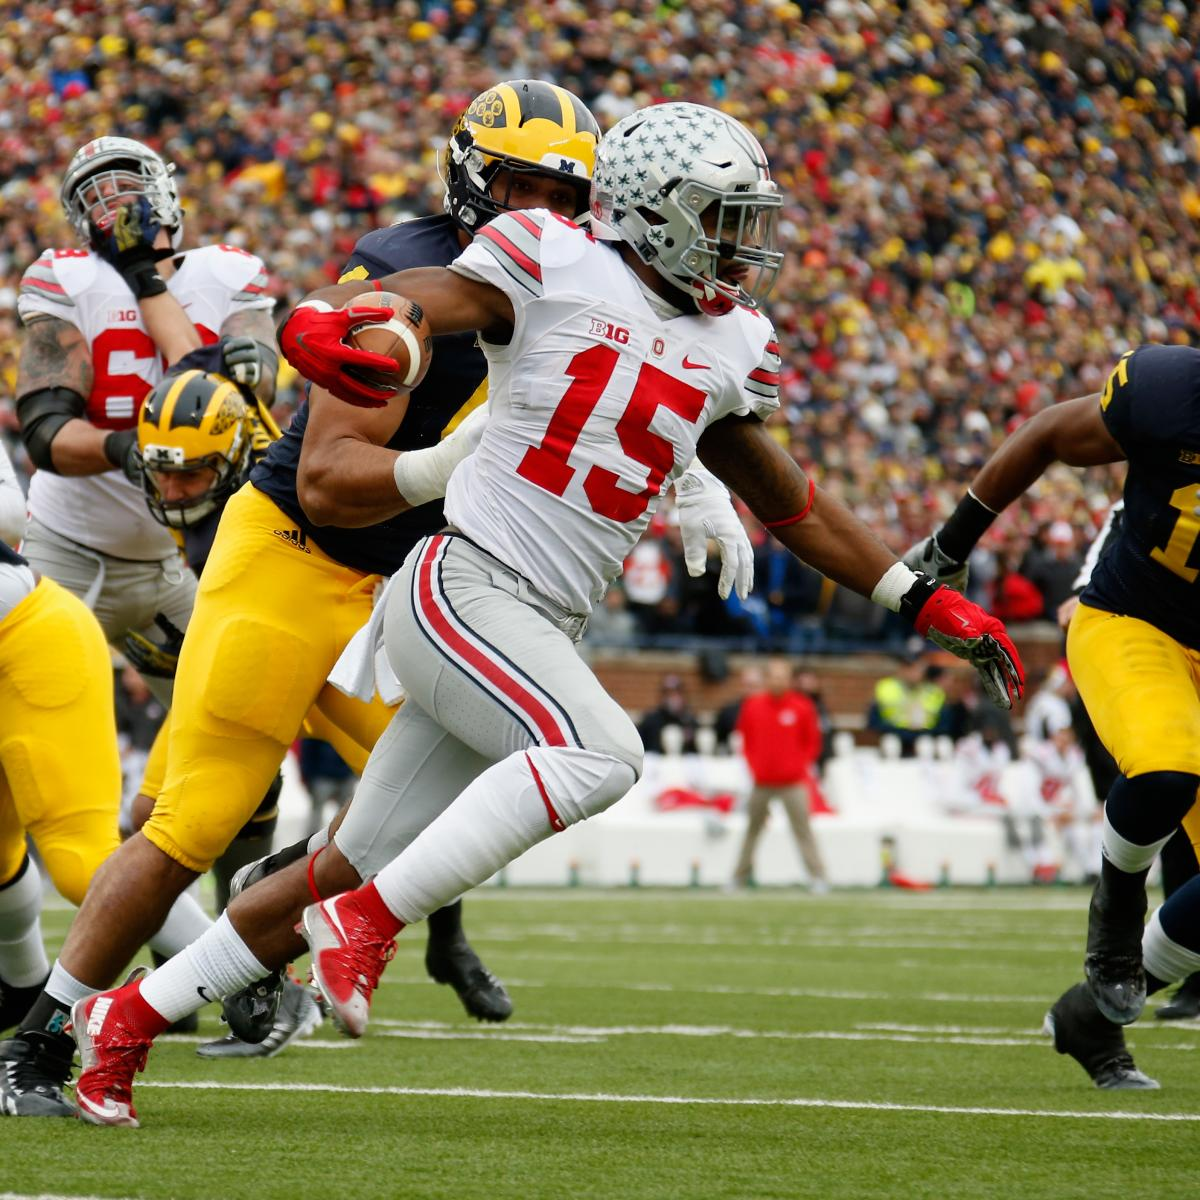 Free comprehensive coverage of Ohio State Buckeyes football updated daily More news from more sources